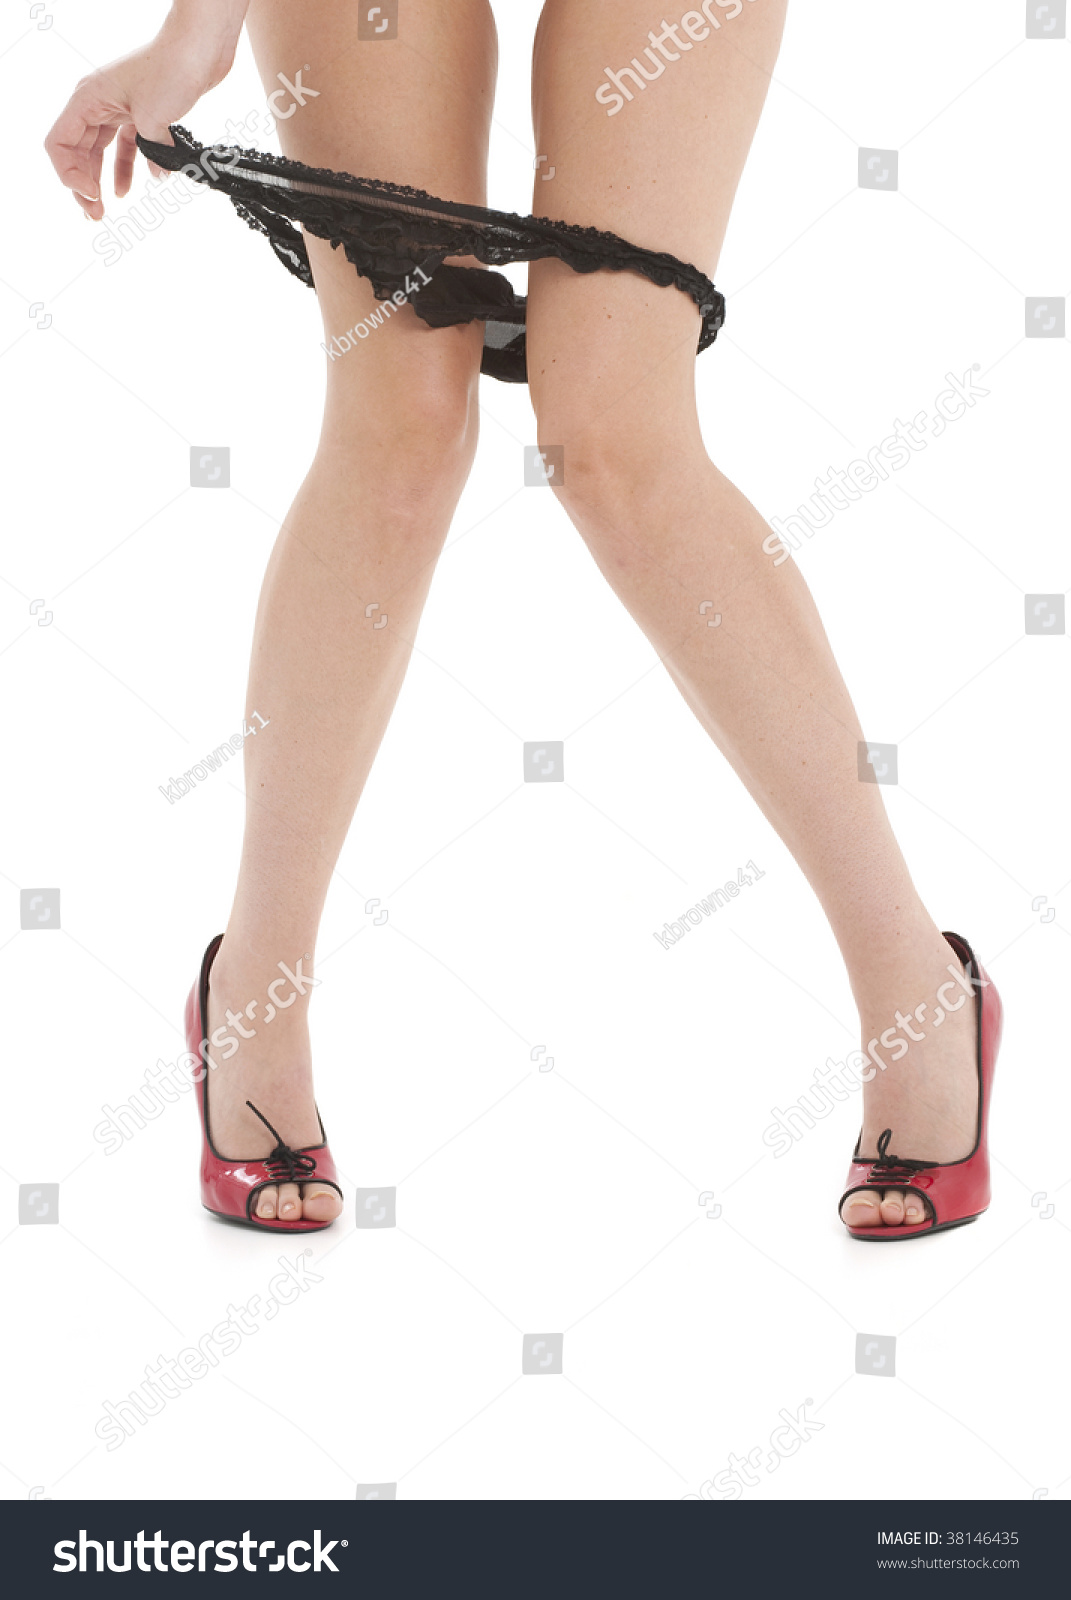 Beautiful Female Legs With Panties Being Playfully Pulled Down Against A White Background Stock Photo 38146435 : Shutterstock